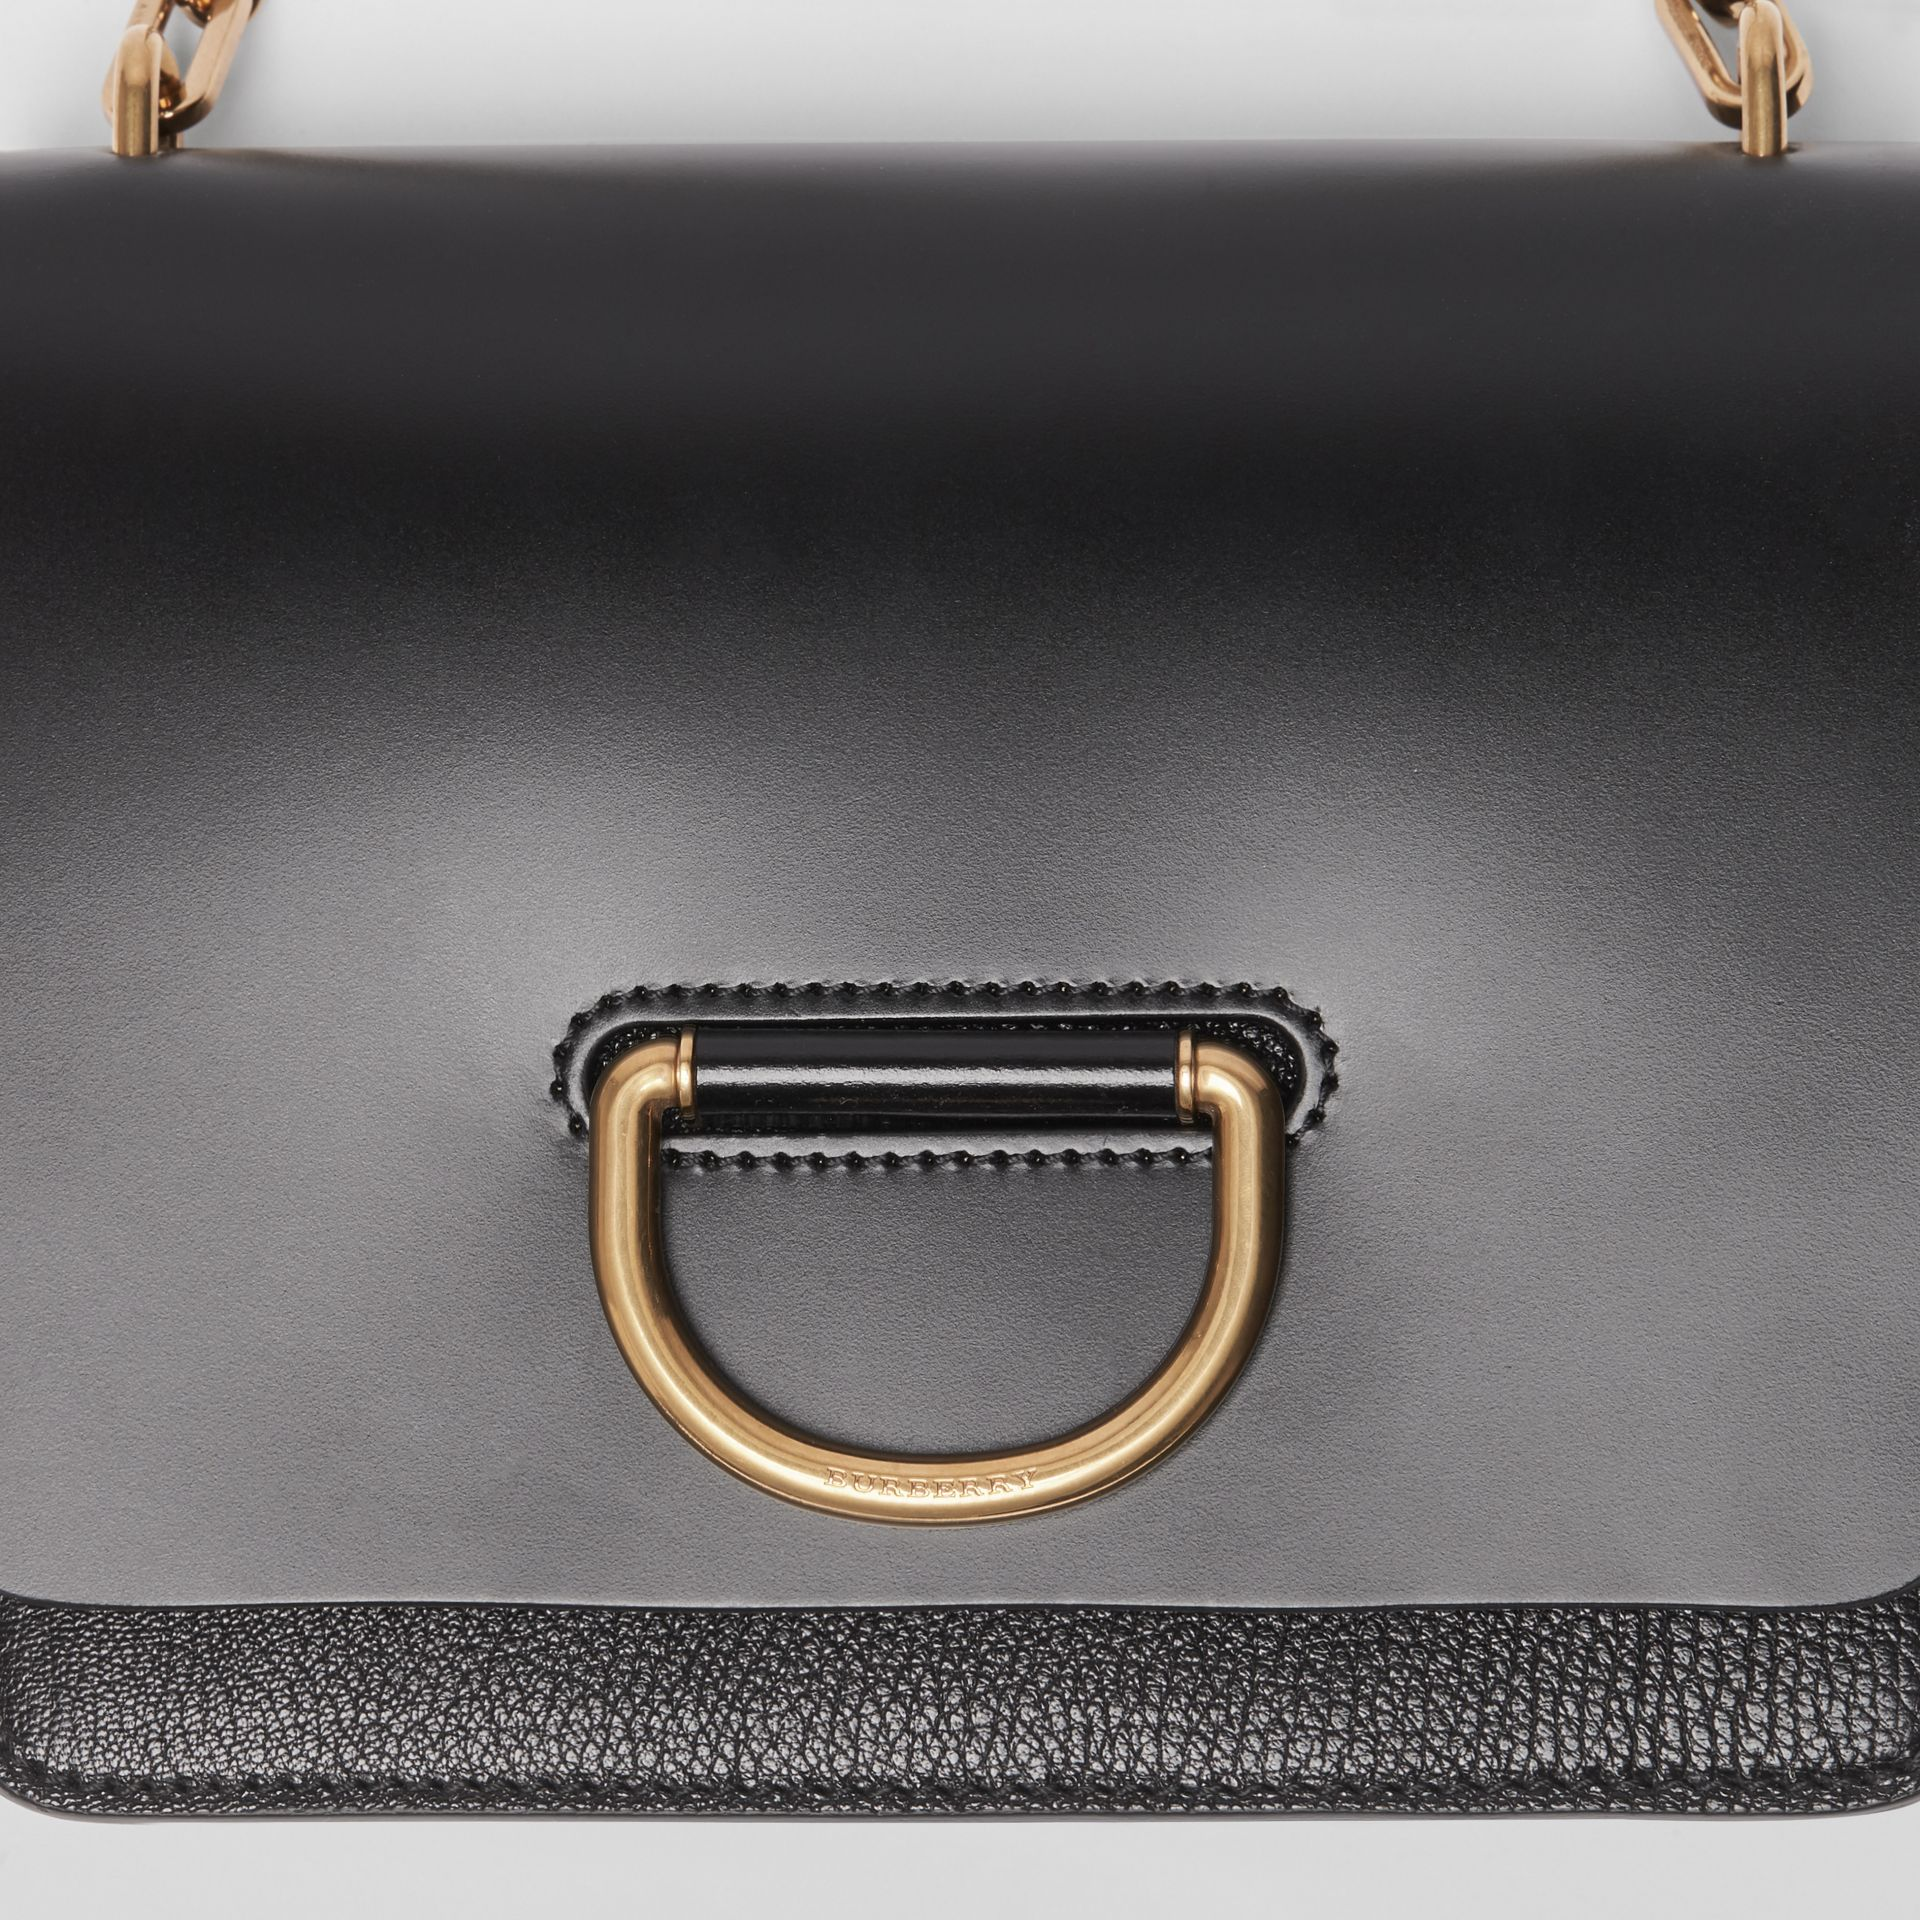 Petit sac The D-ring en cuir (Noir) - Femme | Burberry Canada - photo de la galerie 1